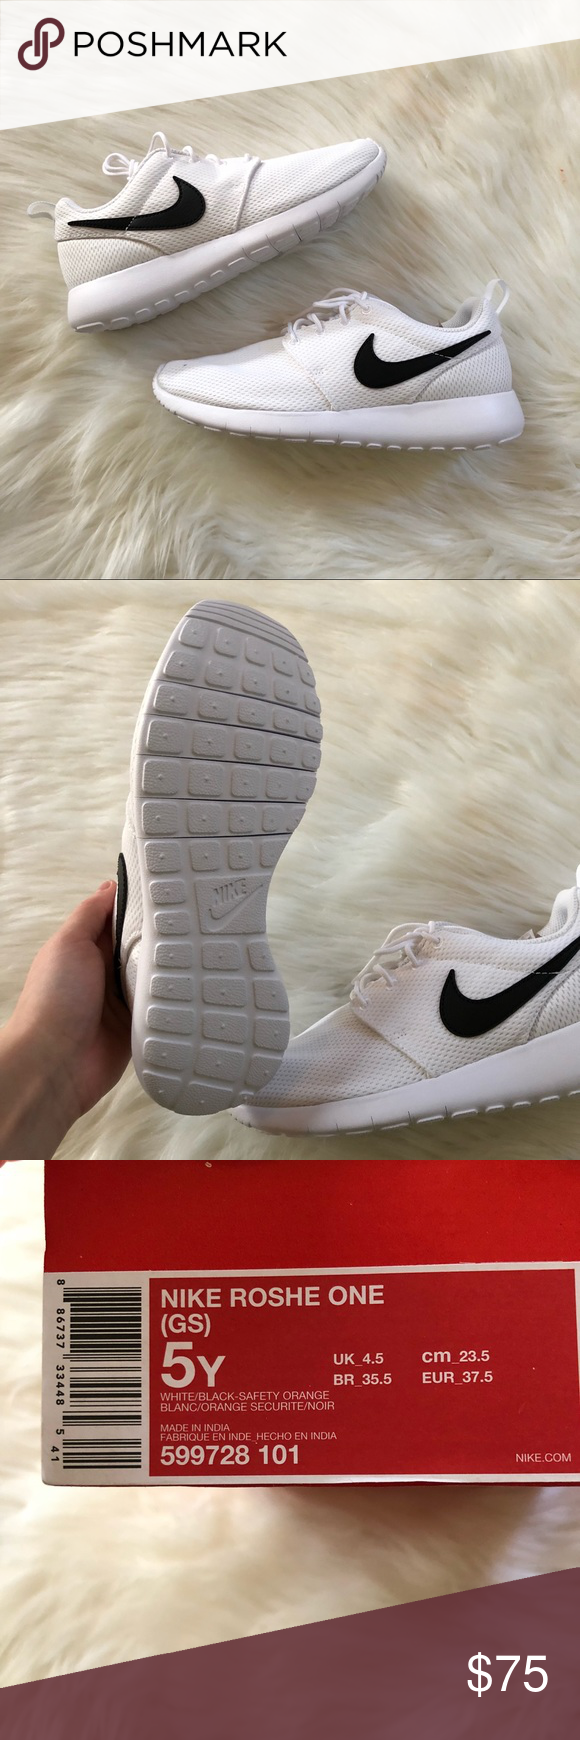 New! Nike roshes Boutique  52a832cef